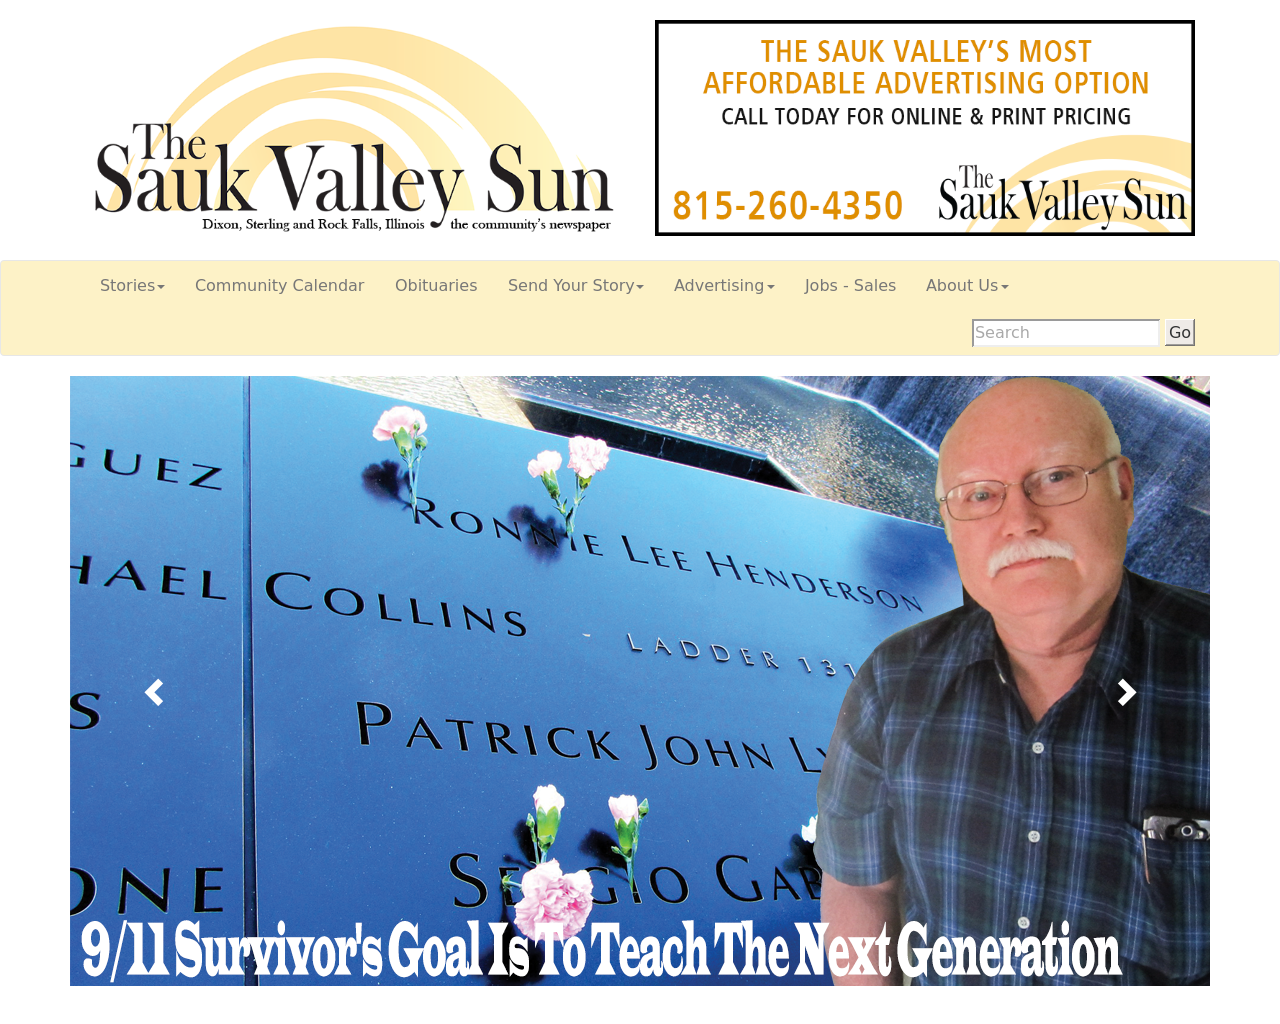 Sauk-Valley-Sun-Advertising-Reviews-Pricing